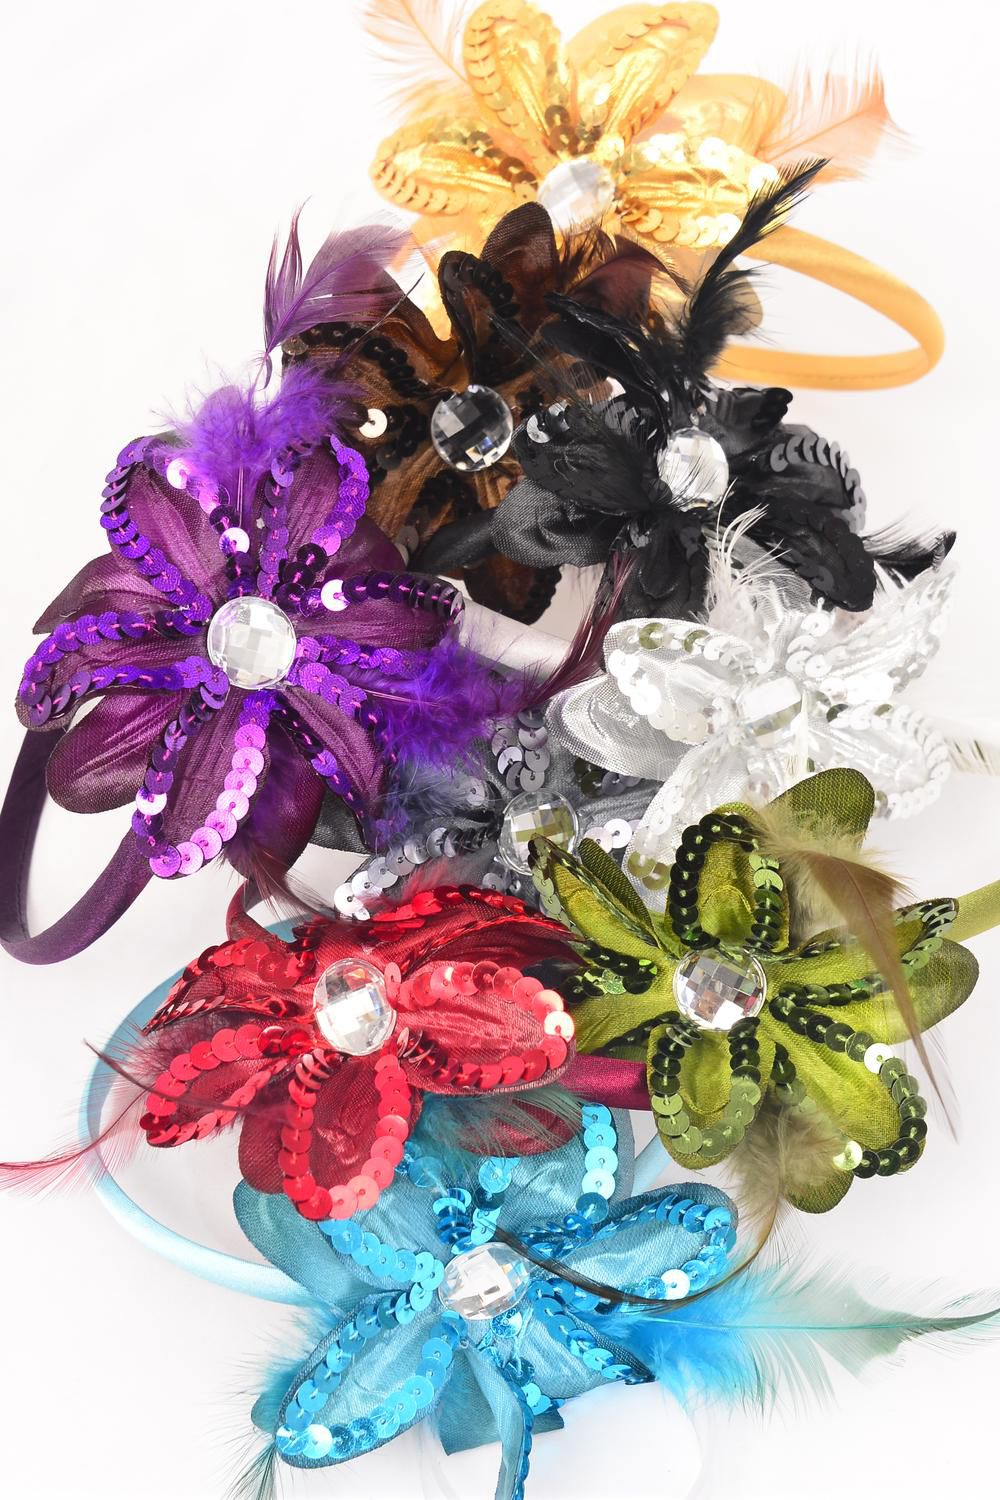 "Headband Horseshoe Sequin Daisy Flower W Feathers Dark Multi/DZ **Dark Multi** Flower-4.5"" Wide,2 Black,2 Brown,2 Silver,1 Blue,1 Purple,1 Gold,1 Red,1 Green,1 Gray,9 Color Asst,hang tag & UPC Code"